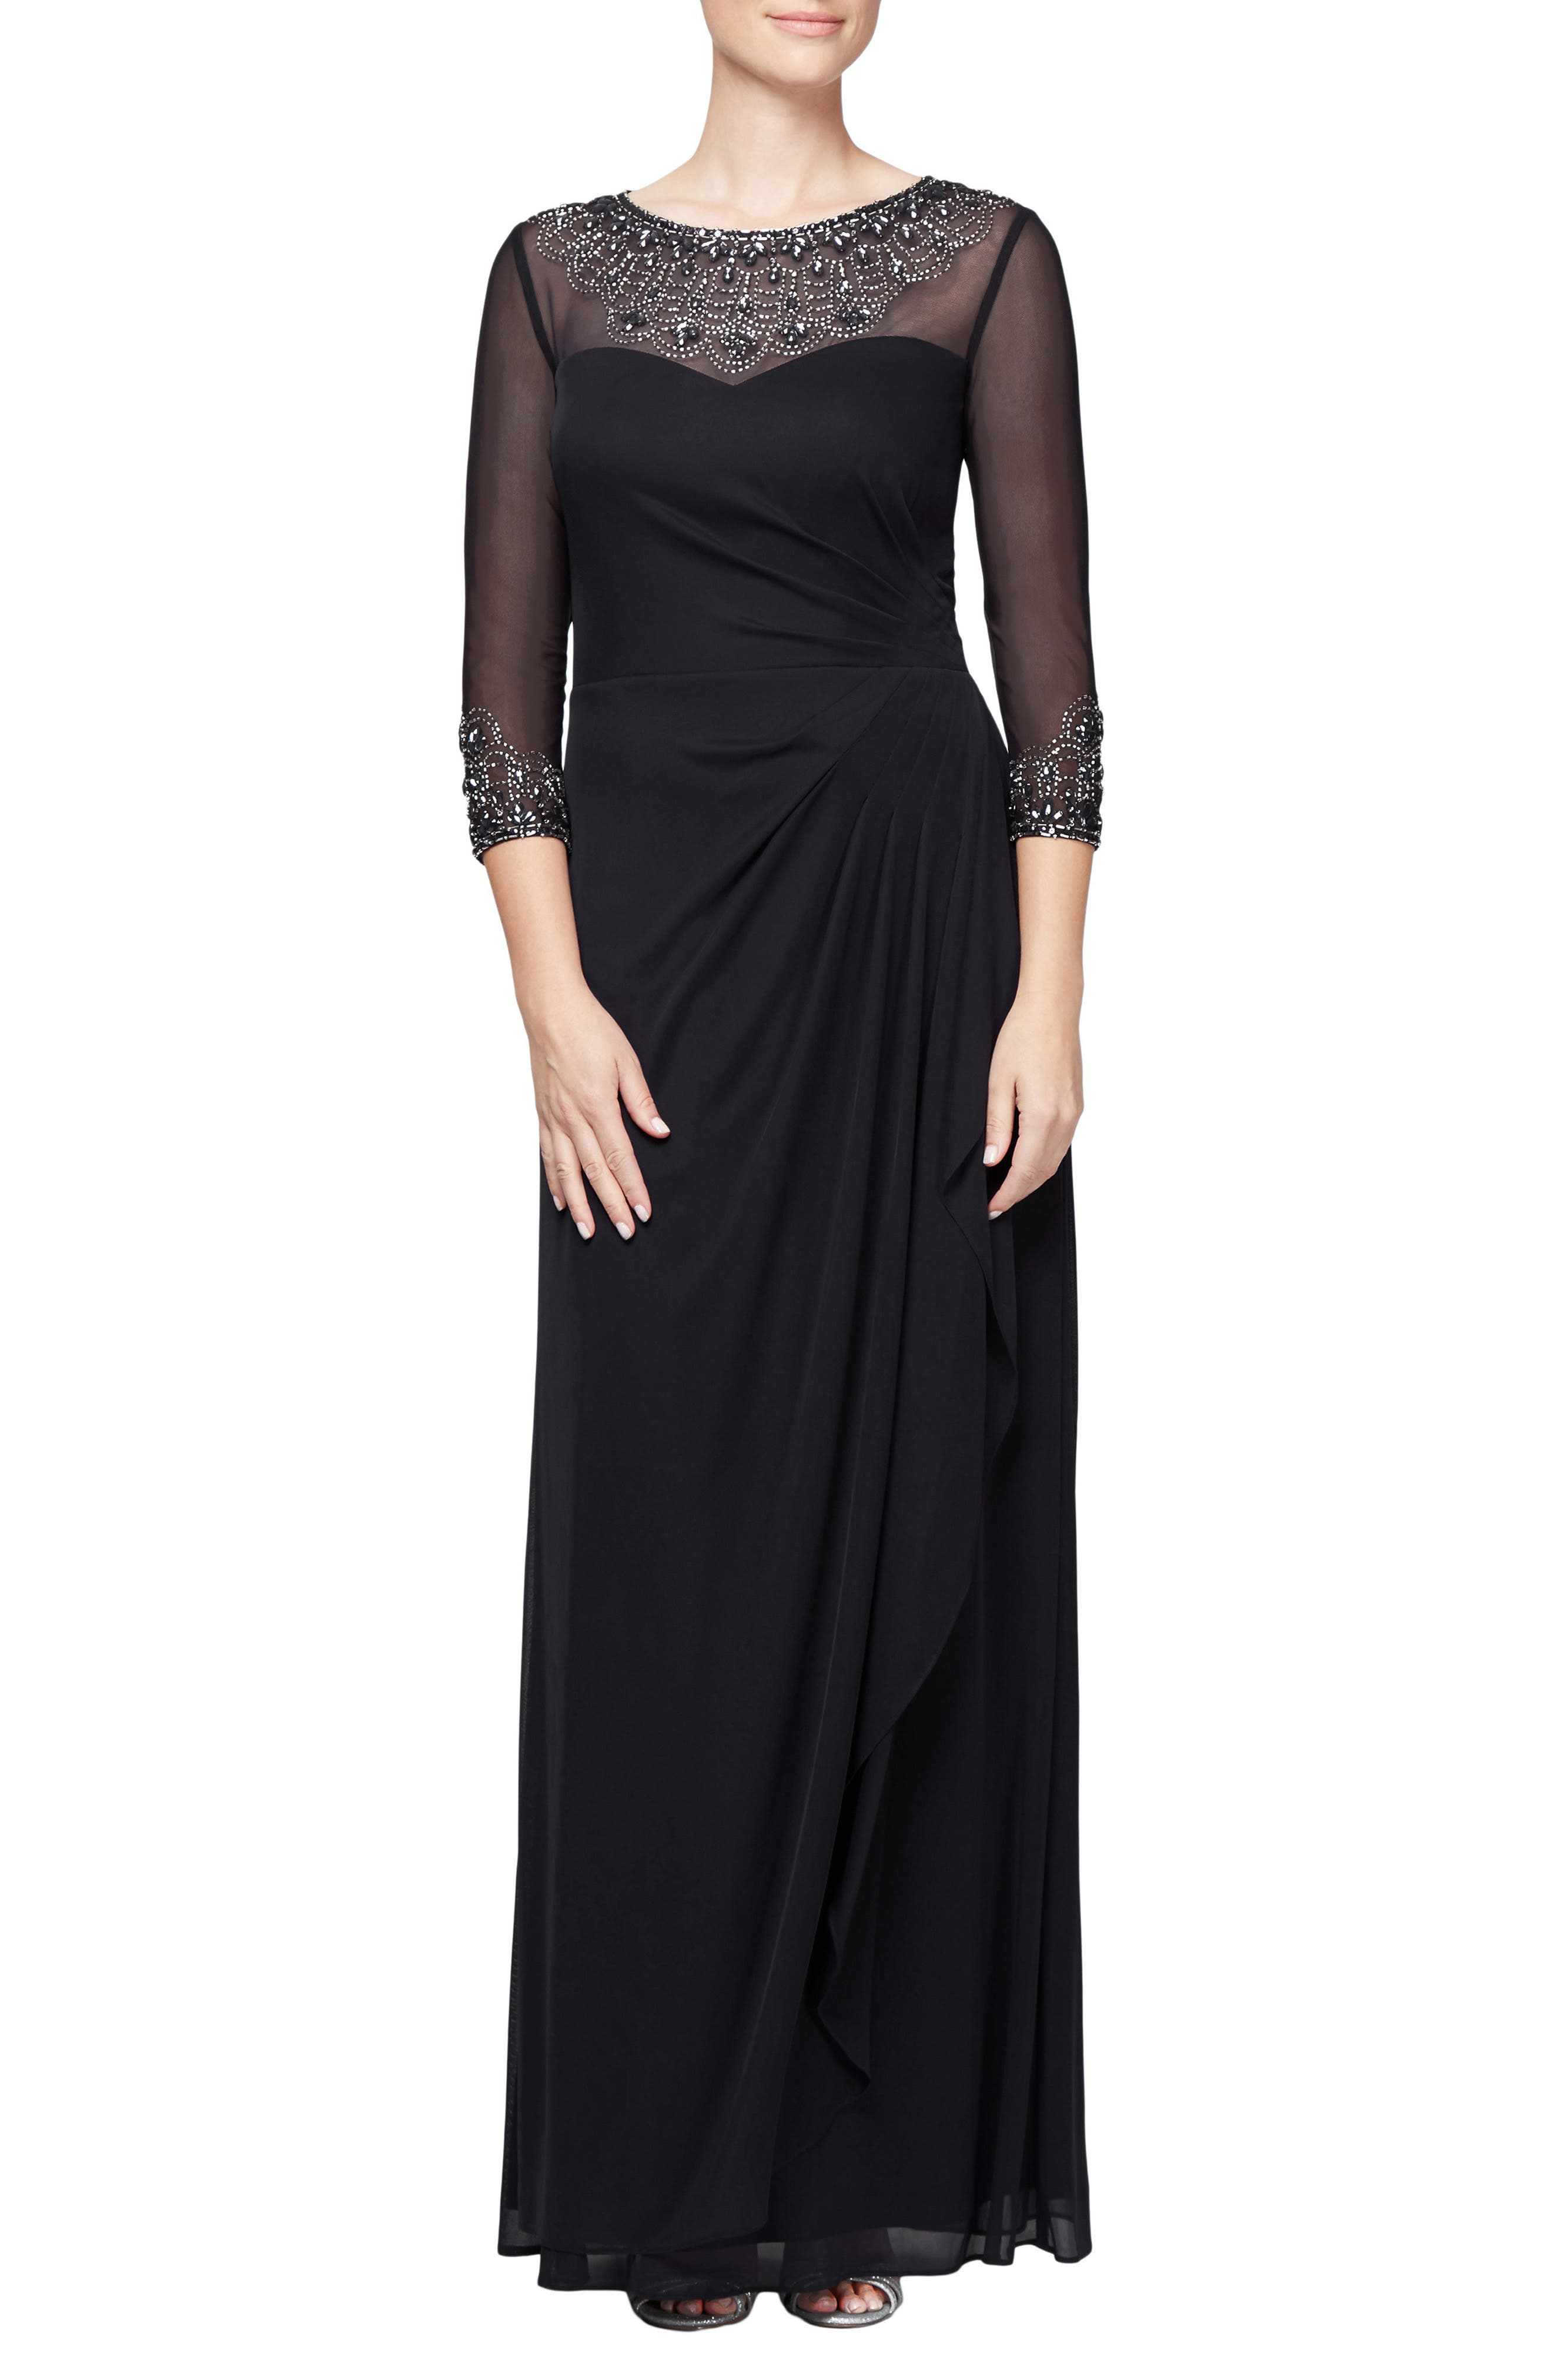 ALEX EVENINGS Embellished A-Line Gown, Main, color, 001